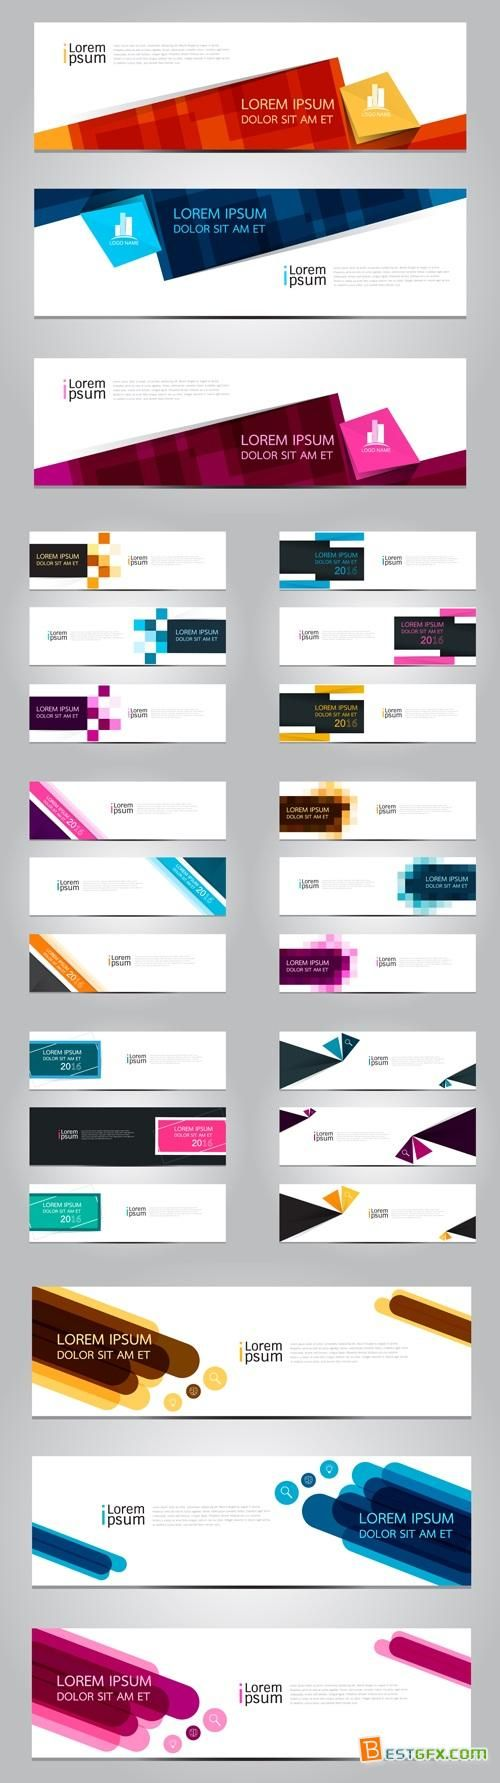 abstract business banners vector